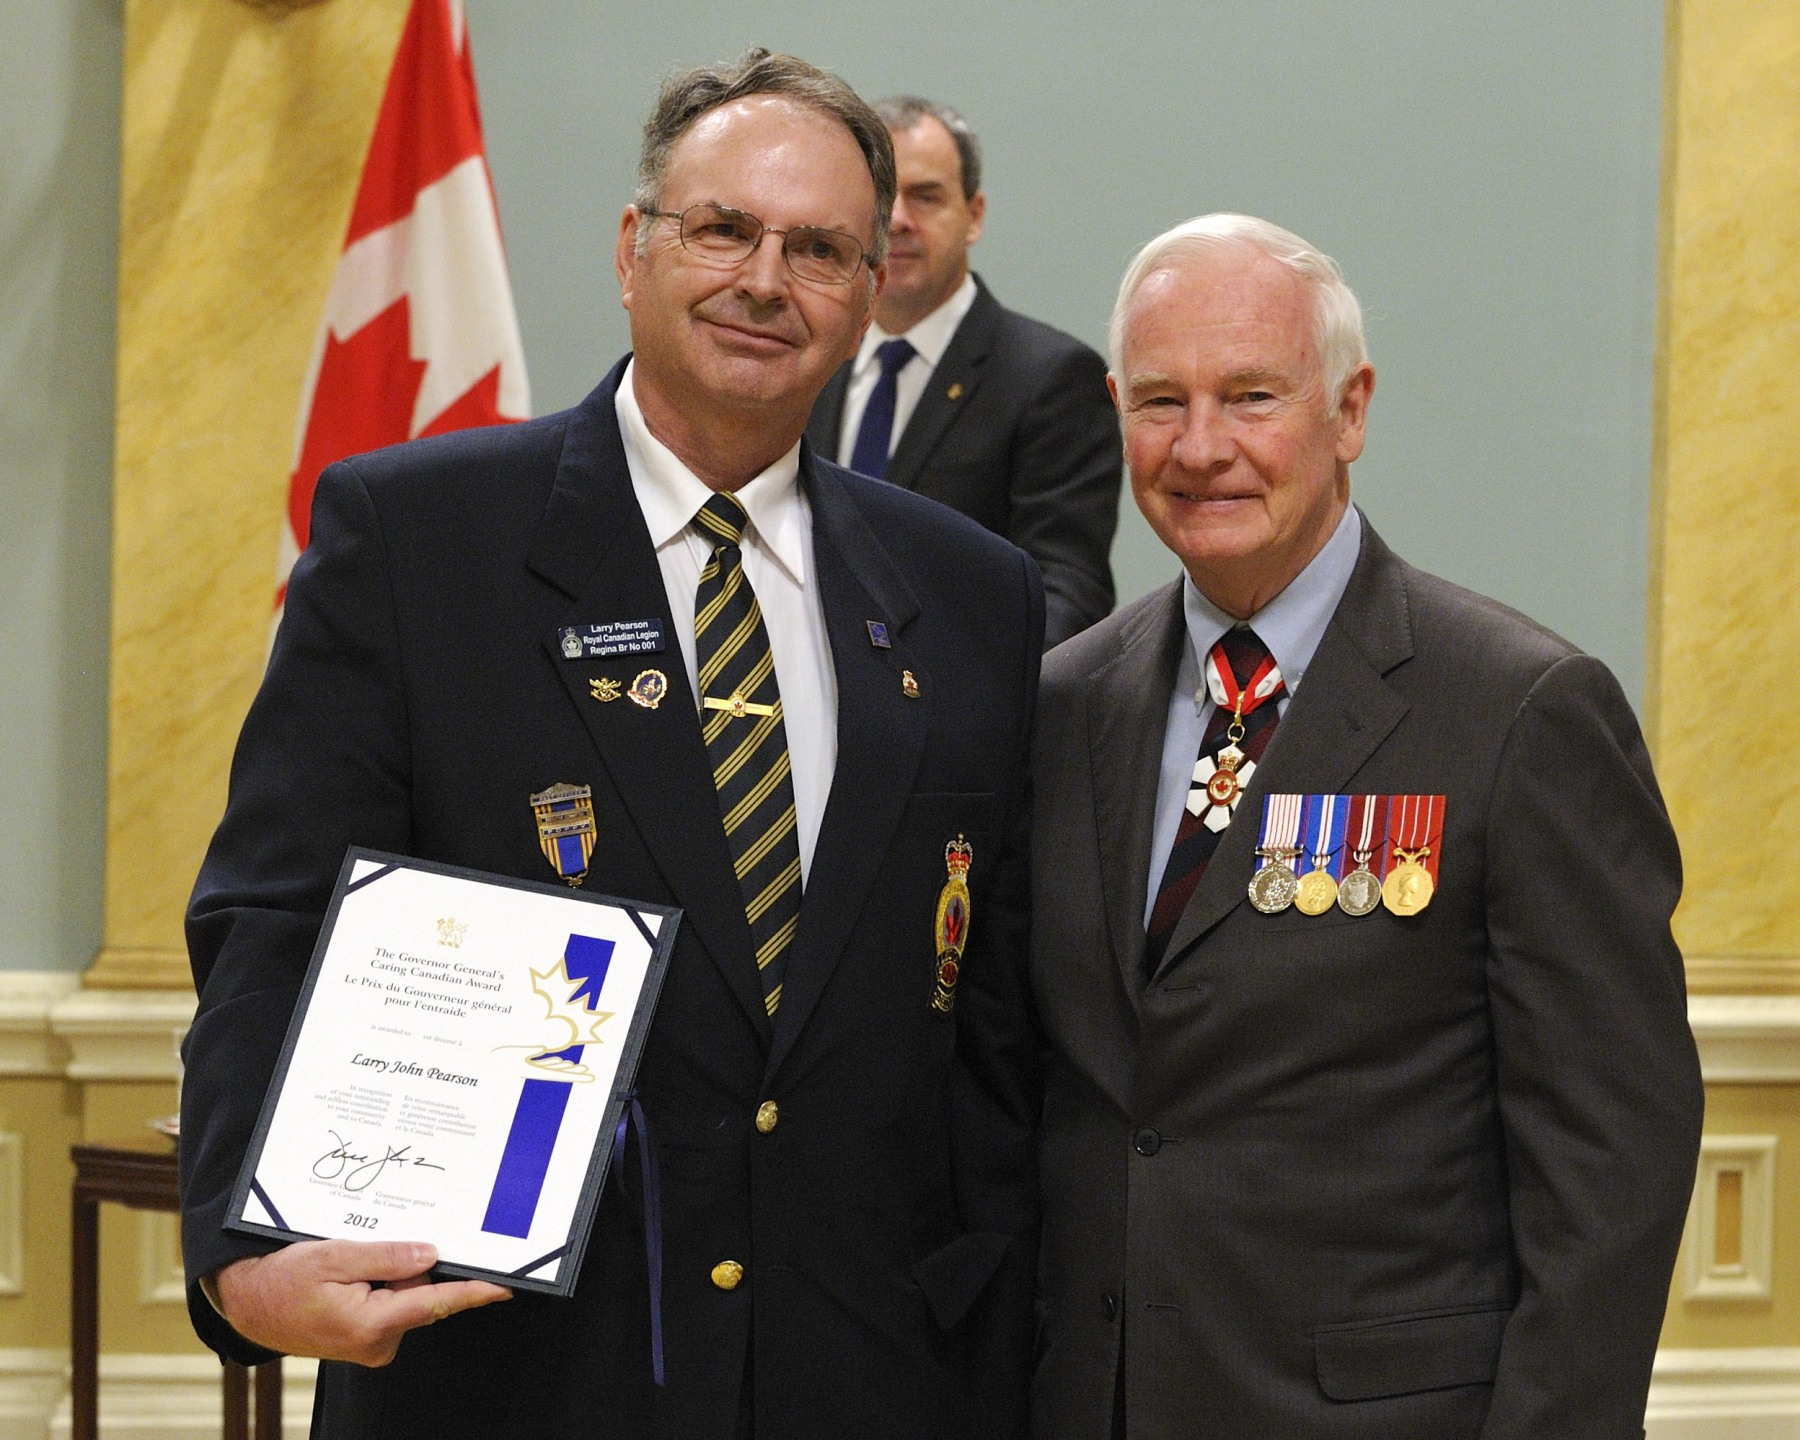 Despite having never served in the Canadian Forces, Larry Pearson (Weyburn, Saskatchewan) is committed to ensuring its members are recognized. Active in his community's branch of the Royal Canadian Legion, he has organized parades that have included local veterans together with members of the local police and emergency services. He has also planned soirées and events to honour veterans returning from Afghanistan and has provided support for their families.